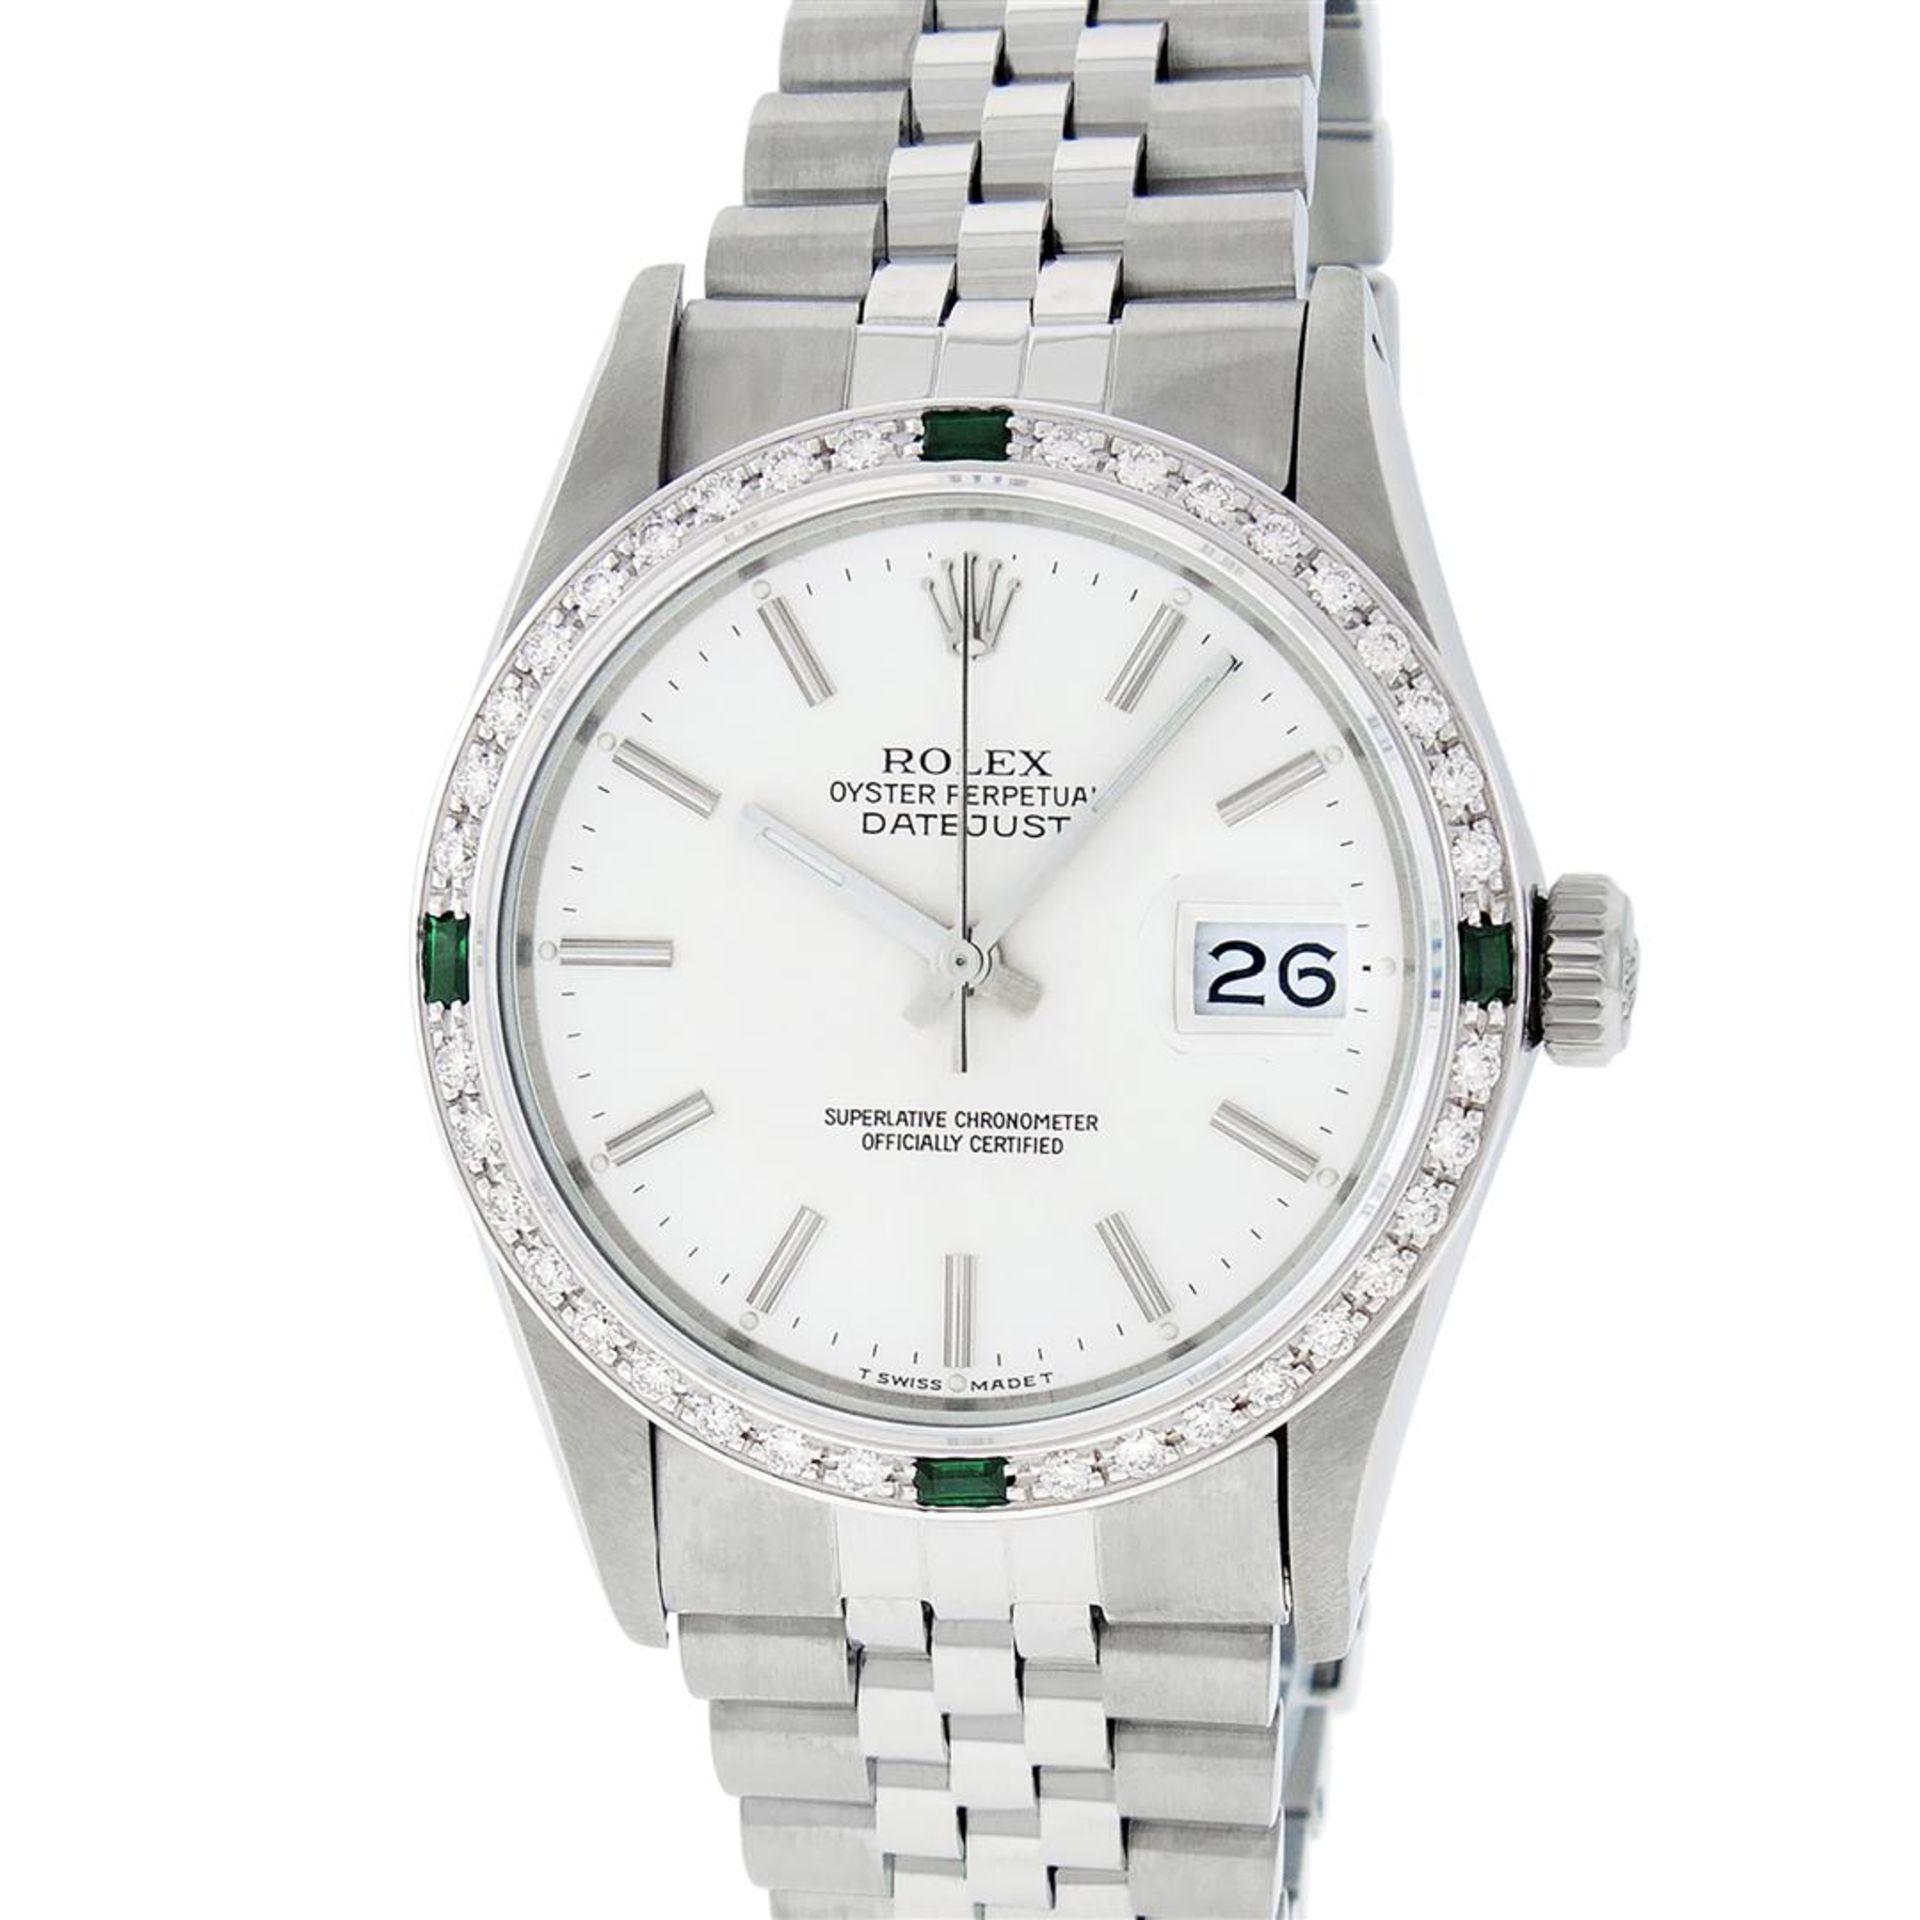 Rolex Mens Stainless Steel Silver Index Diamond 36MM Datejust Wristwatch - Image 5 of 9